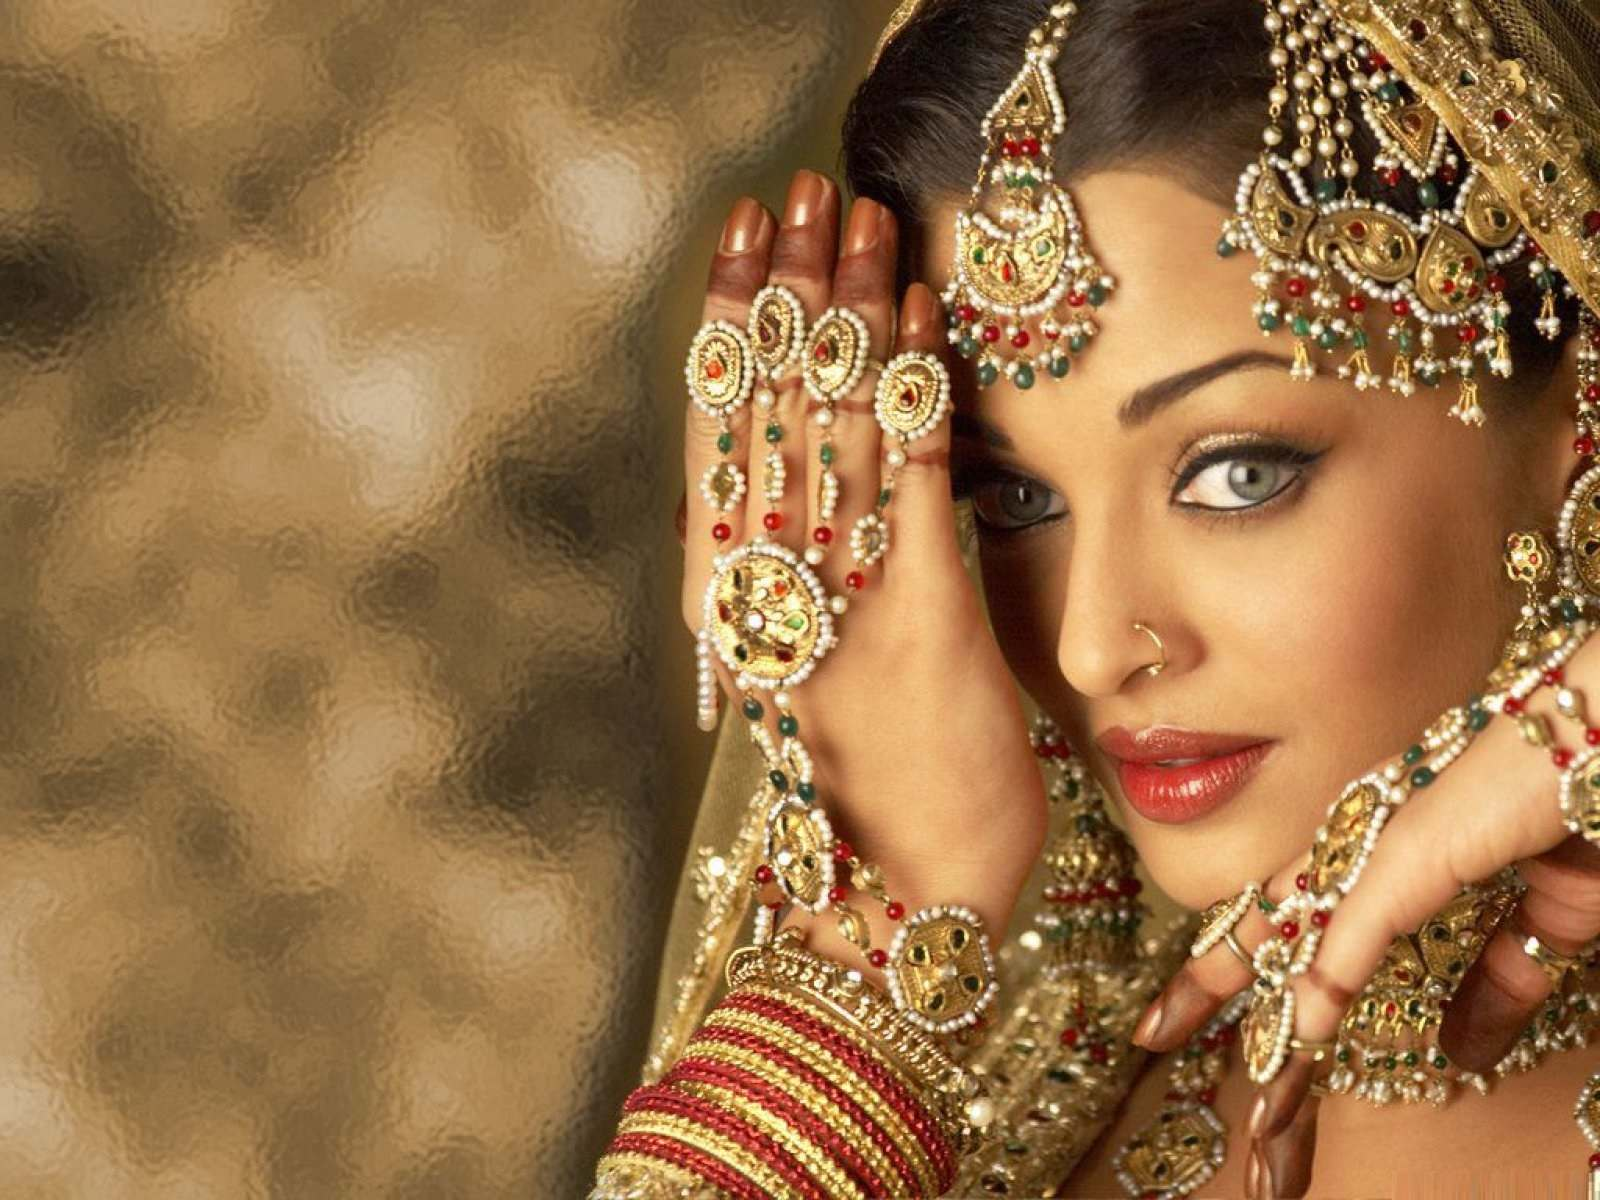 the bachchan bahu — aishwarya rai bachchan in karela at the kalyan